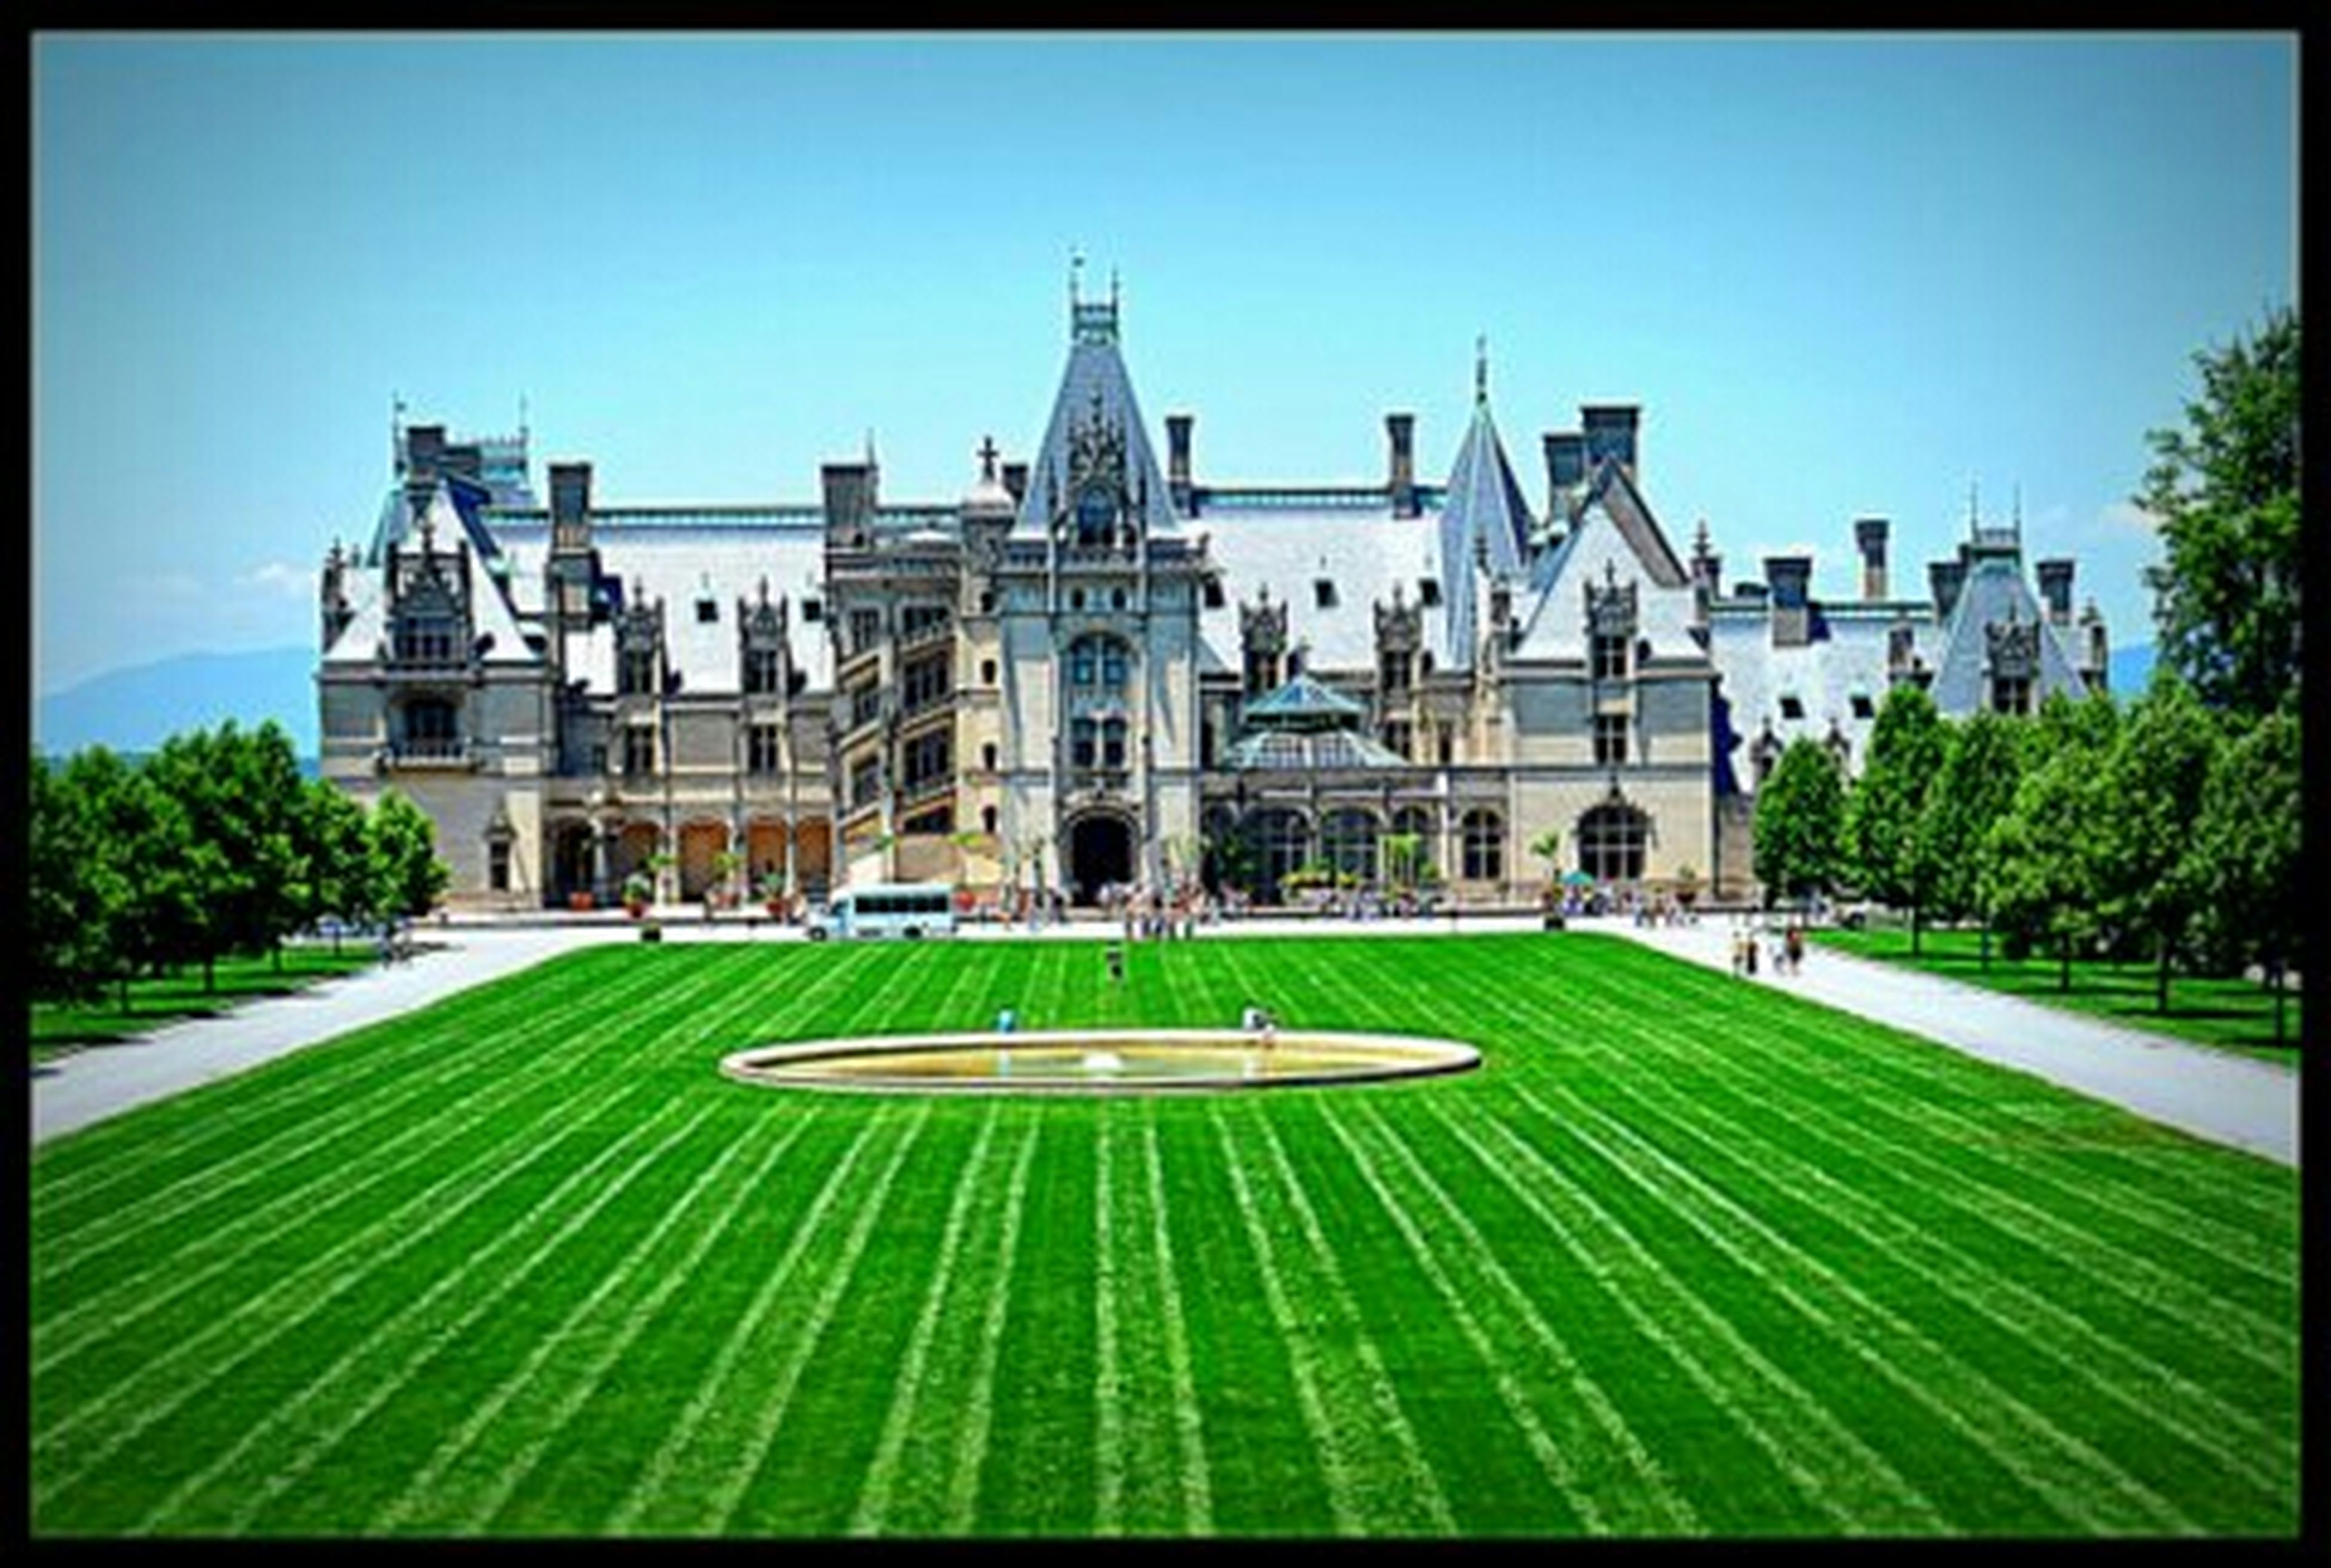 architecture, building exterior, built structure, grass, lawn, transfer print, clear sky, green color, famous place, formal garden, tree, travel destinations, auto post production filter, sunlight, facade, city, park - man made space, hedge, history, tourism